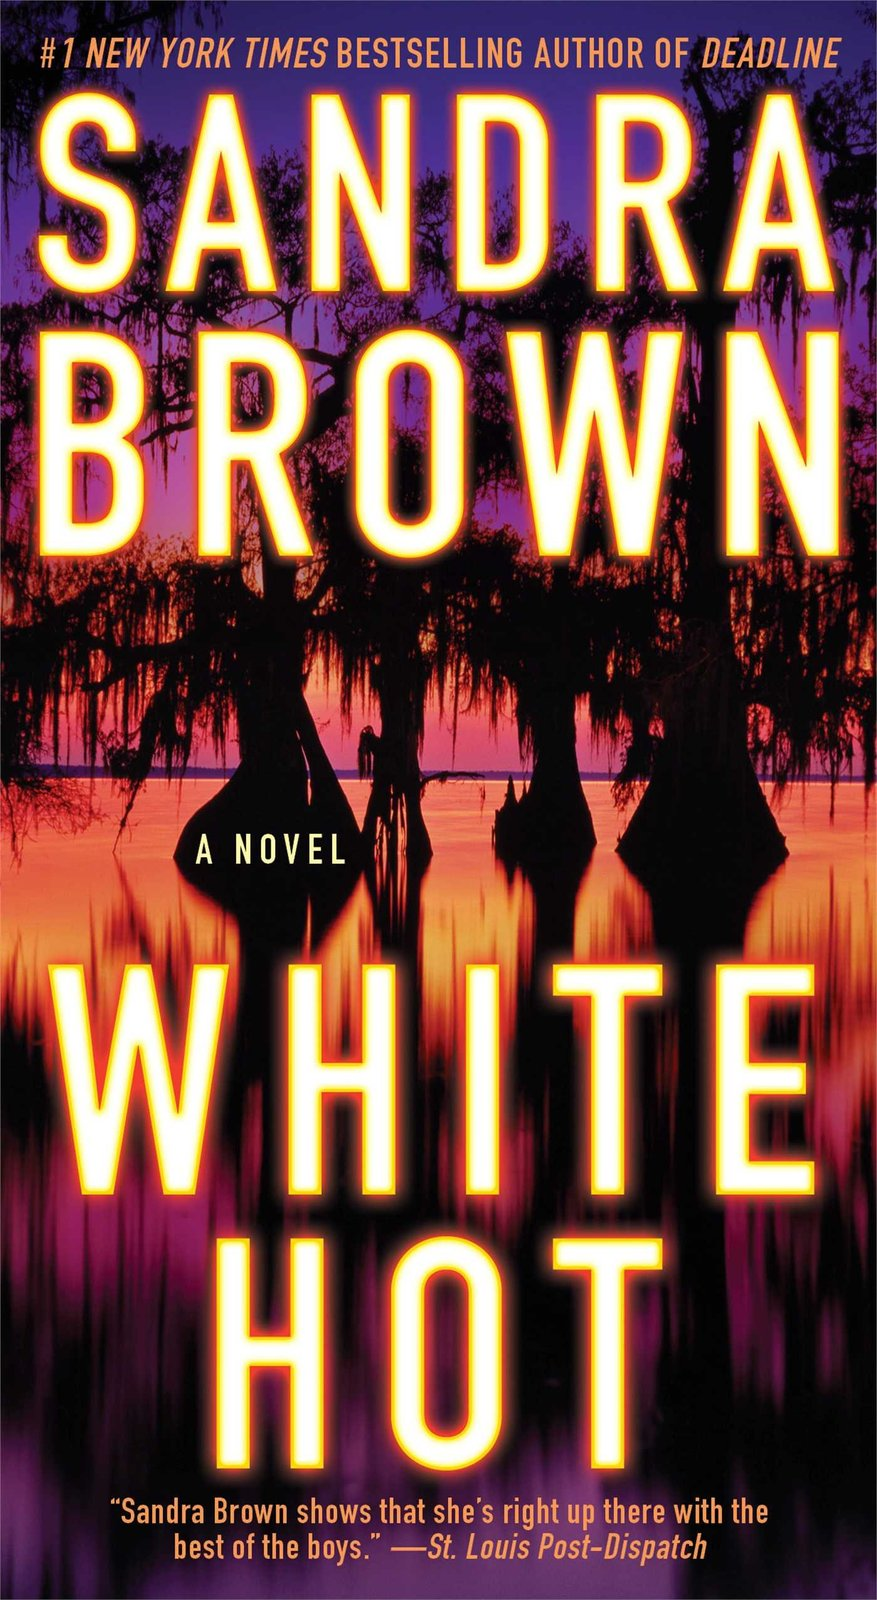 White Hot by Sandra Brown